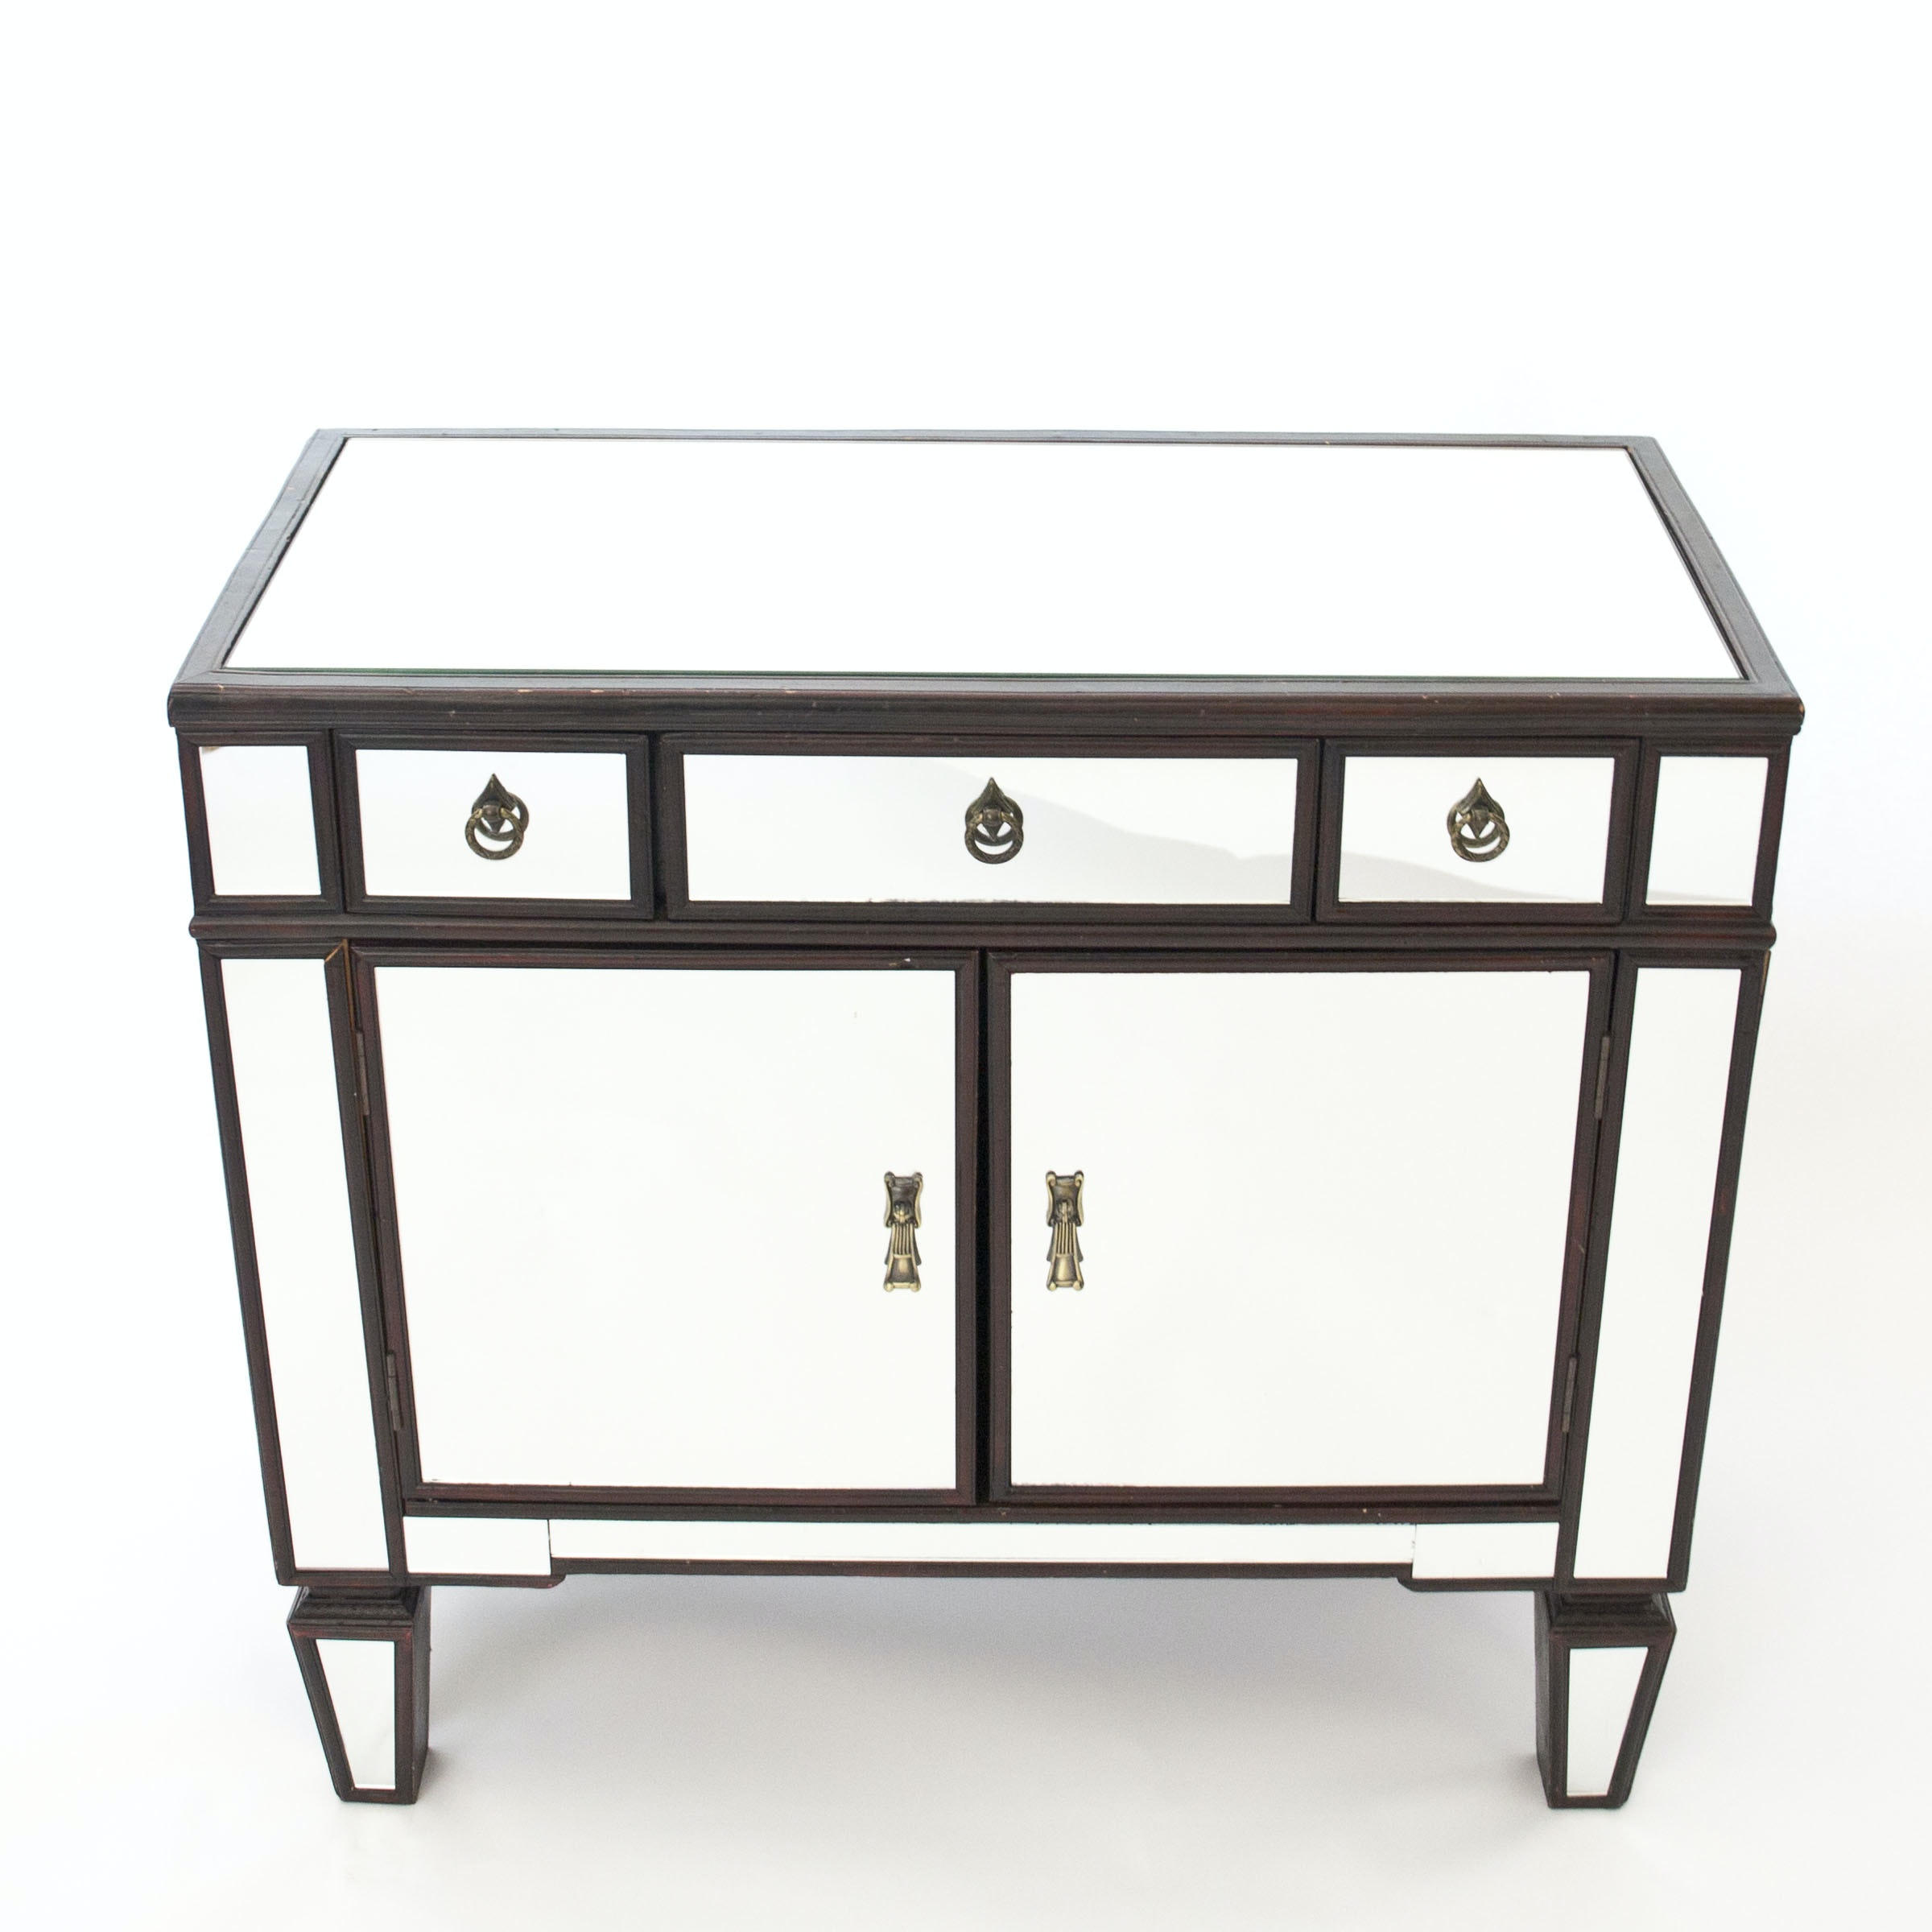 Mirrored Entry Cabinet